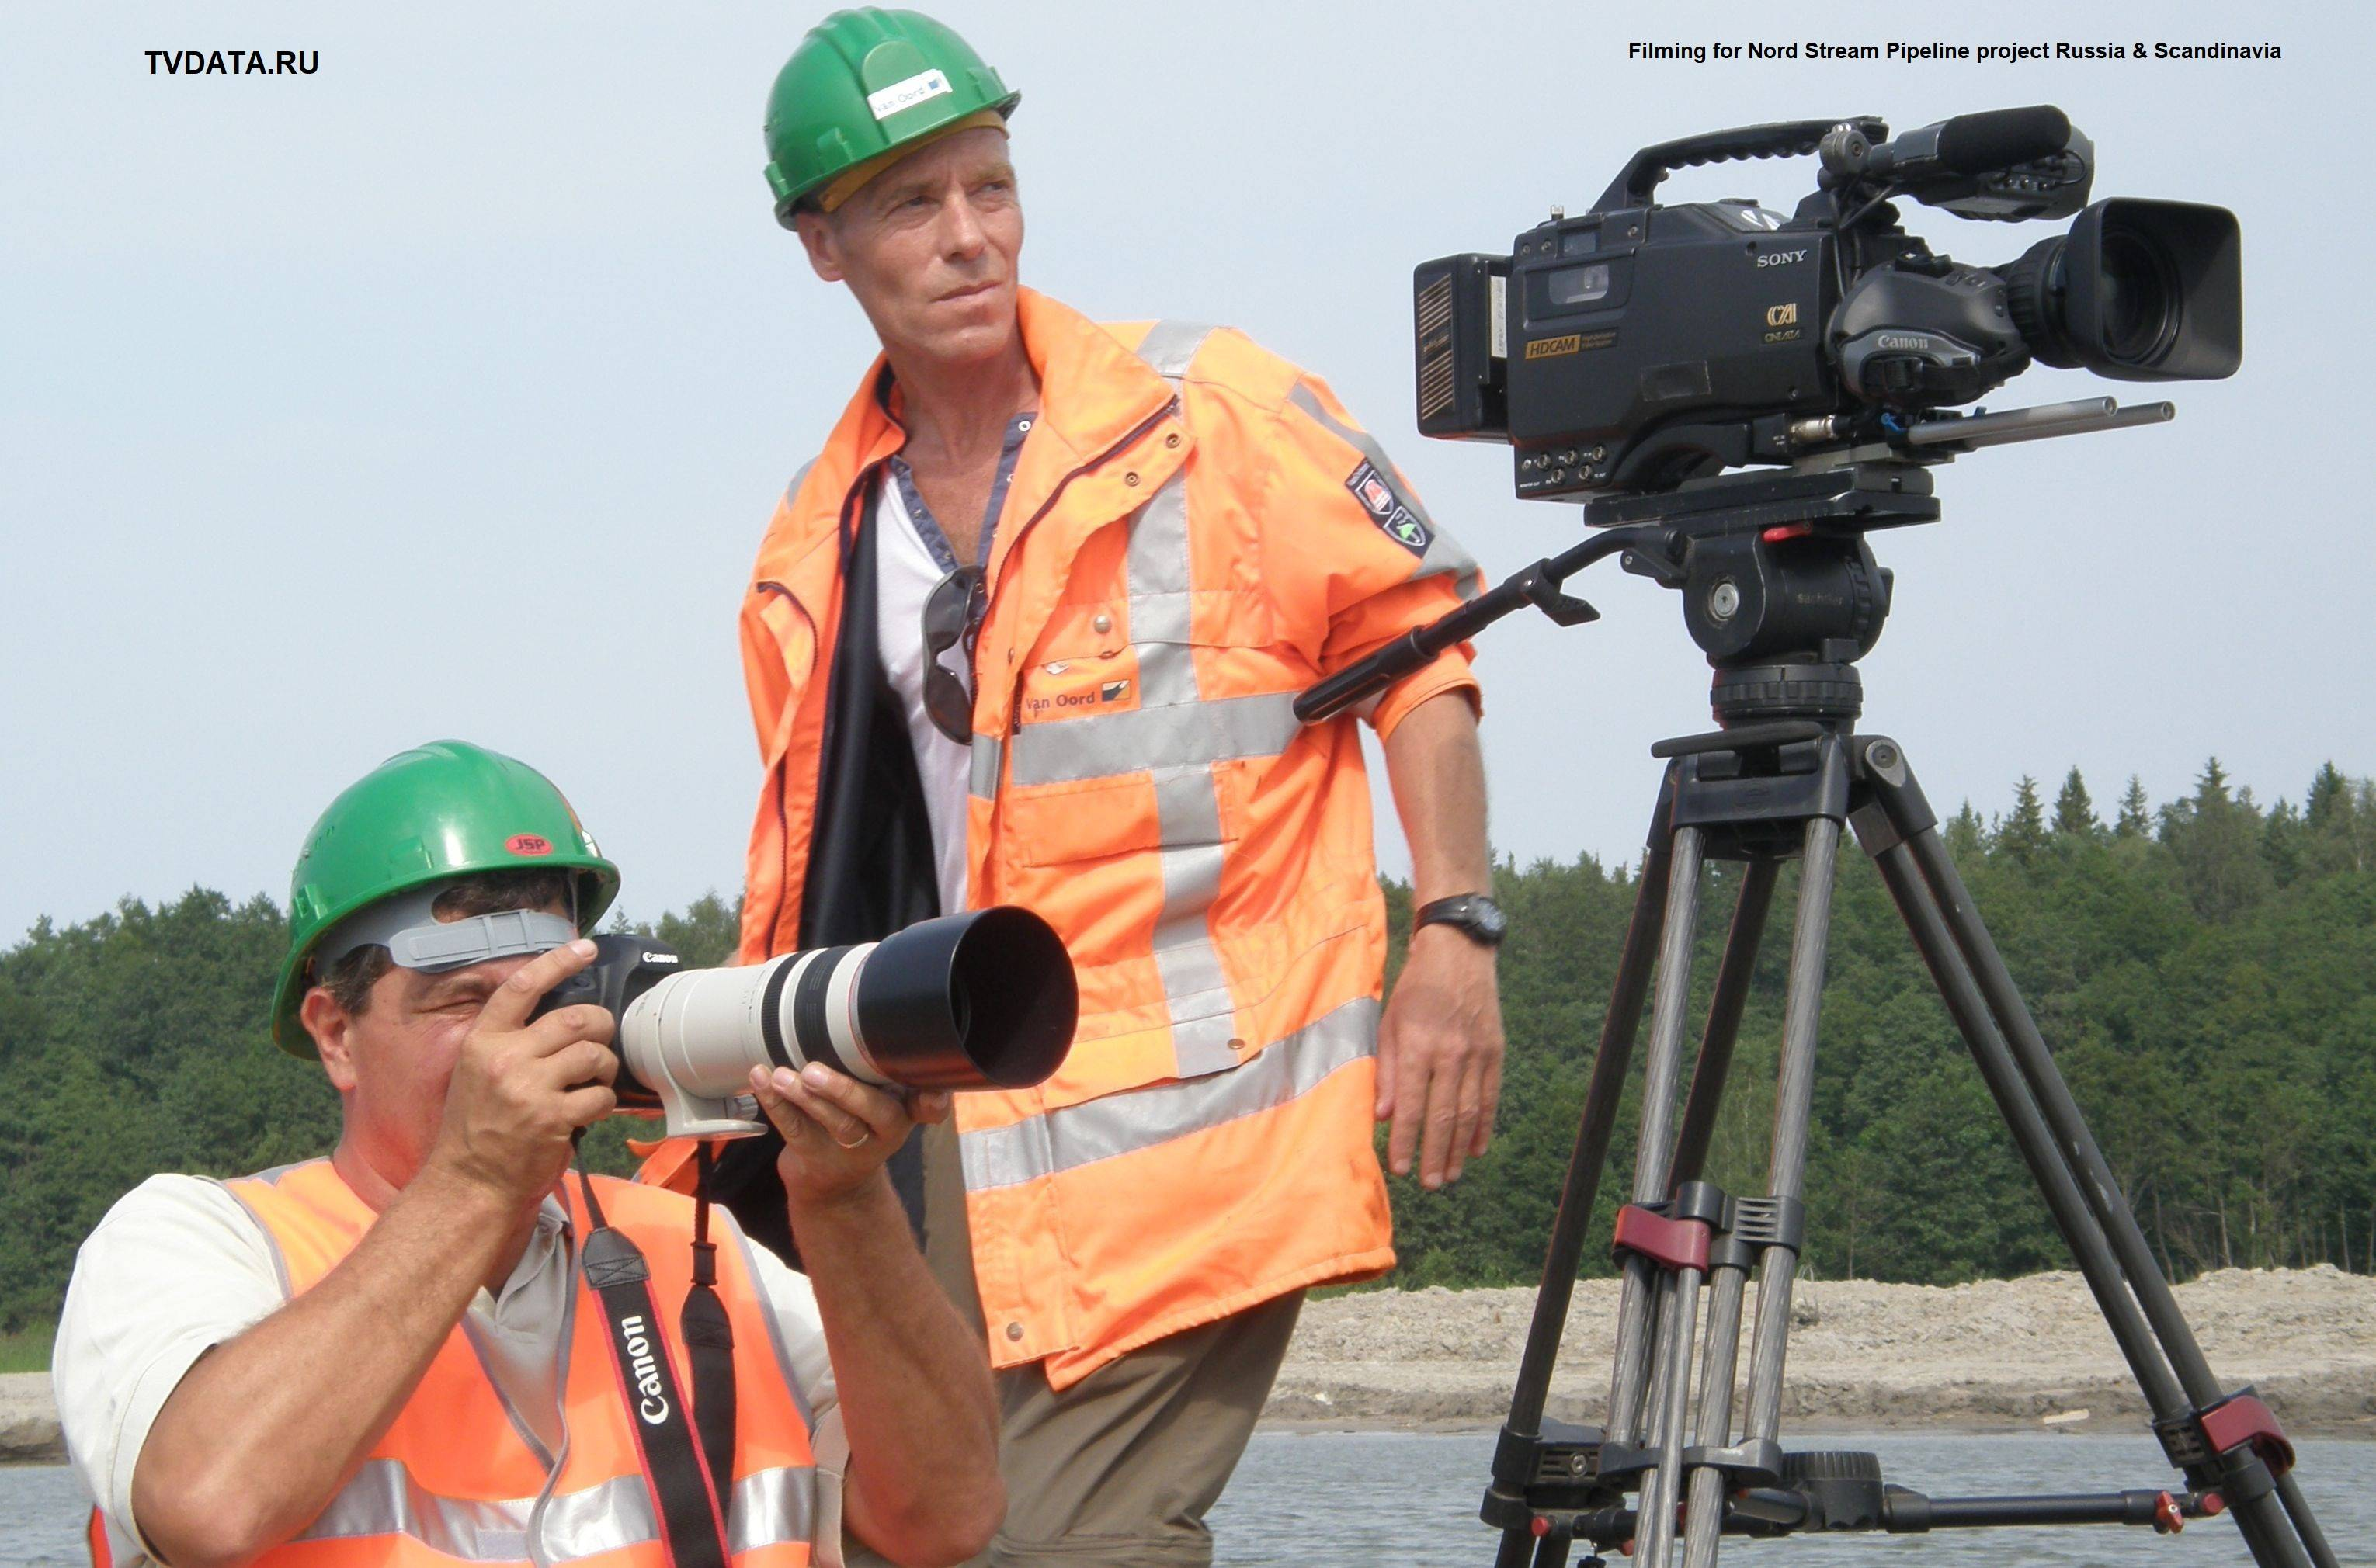 Filming for Nord Stream Pipeline project Russia & Scandinavia